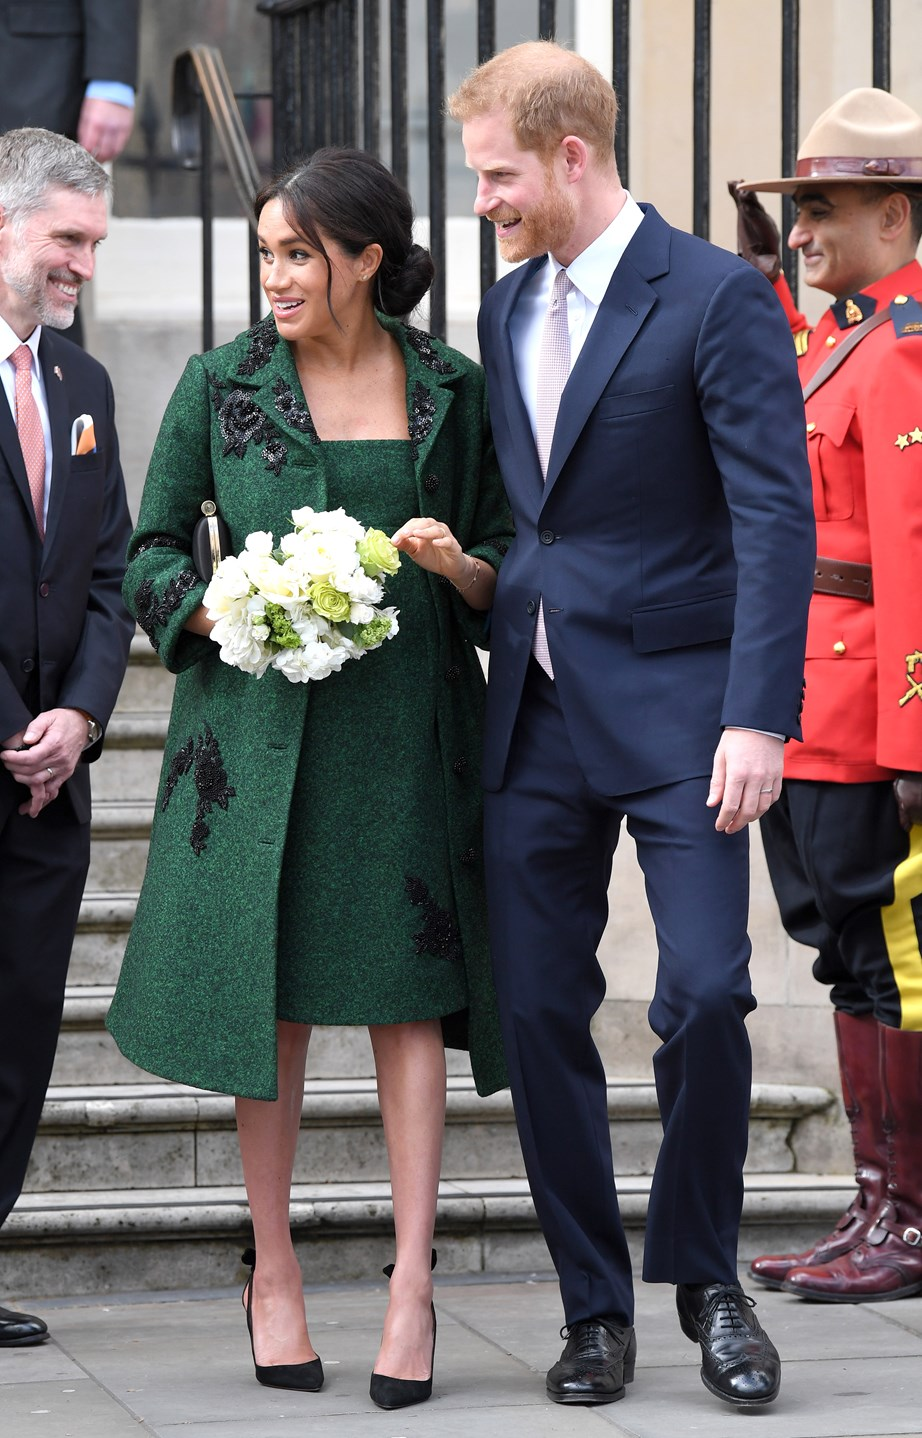 """On Commonwealth Day on March 11, the Duchess of Sussex wore a gorgeous green bespoke dress and coat by Erdem. Featuring intricate black beading, the fashion designer revealed the style is known as [Doria beaded-rose embroidery](https://www.nowtolove.co.nz/celebrity/royals/meghan-markle-commonwealth-celebration-doria-ragland-40774